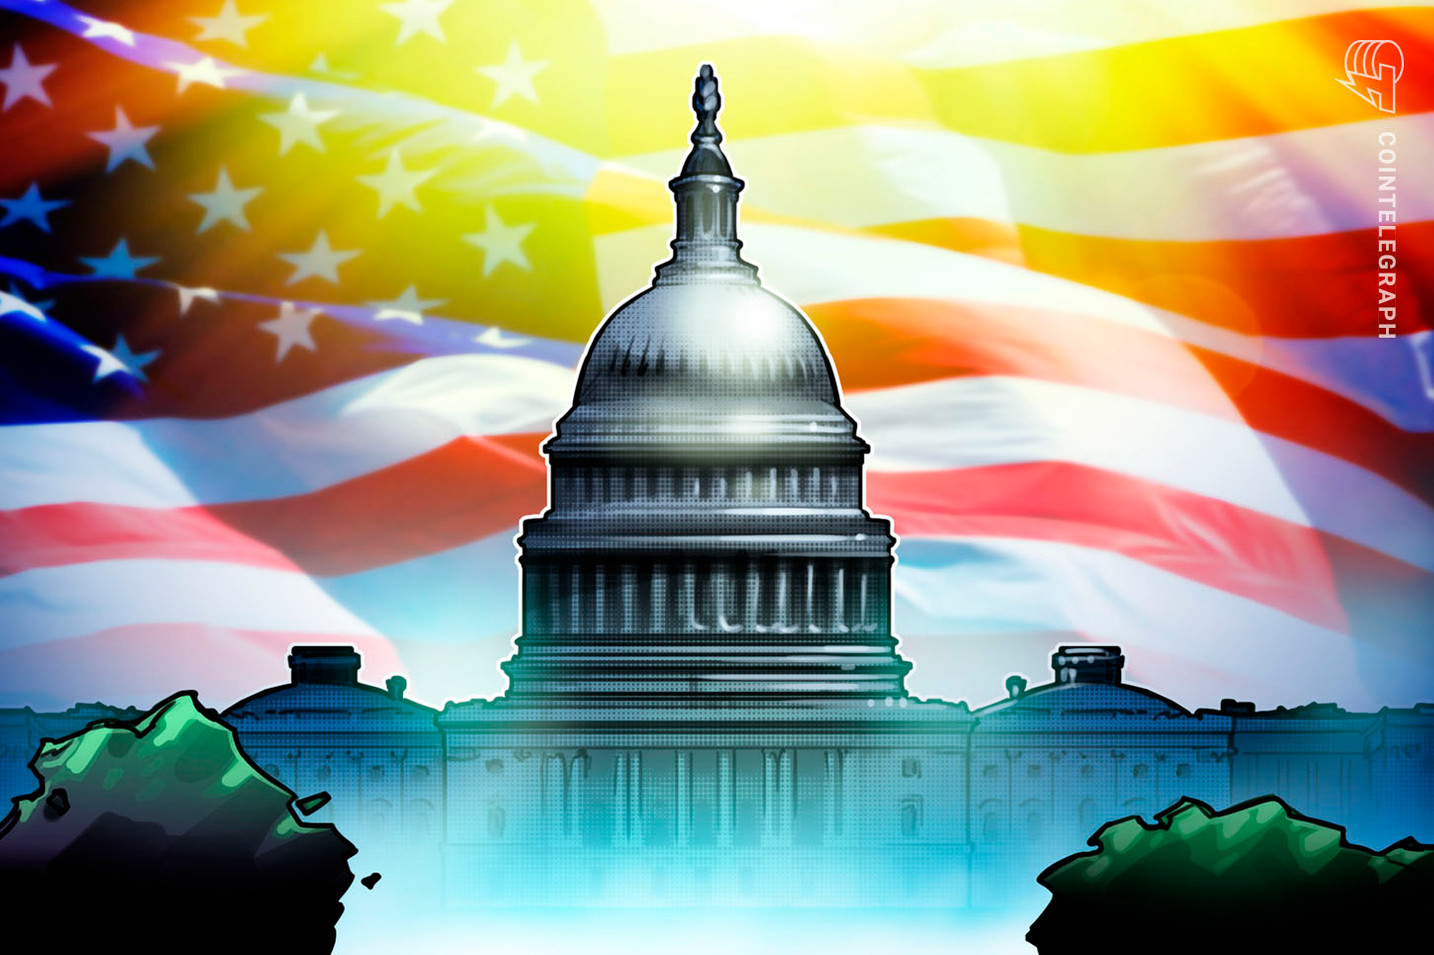 US Lawmakers Form Fintech Task Force to Examine Industry